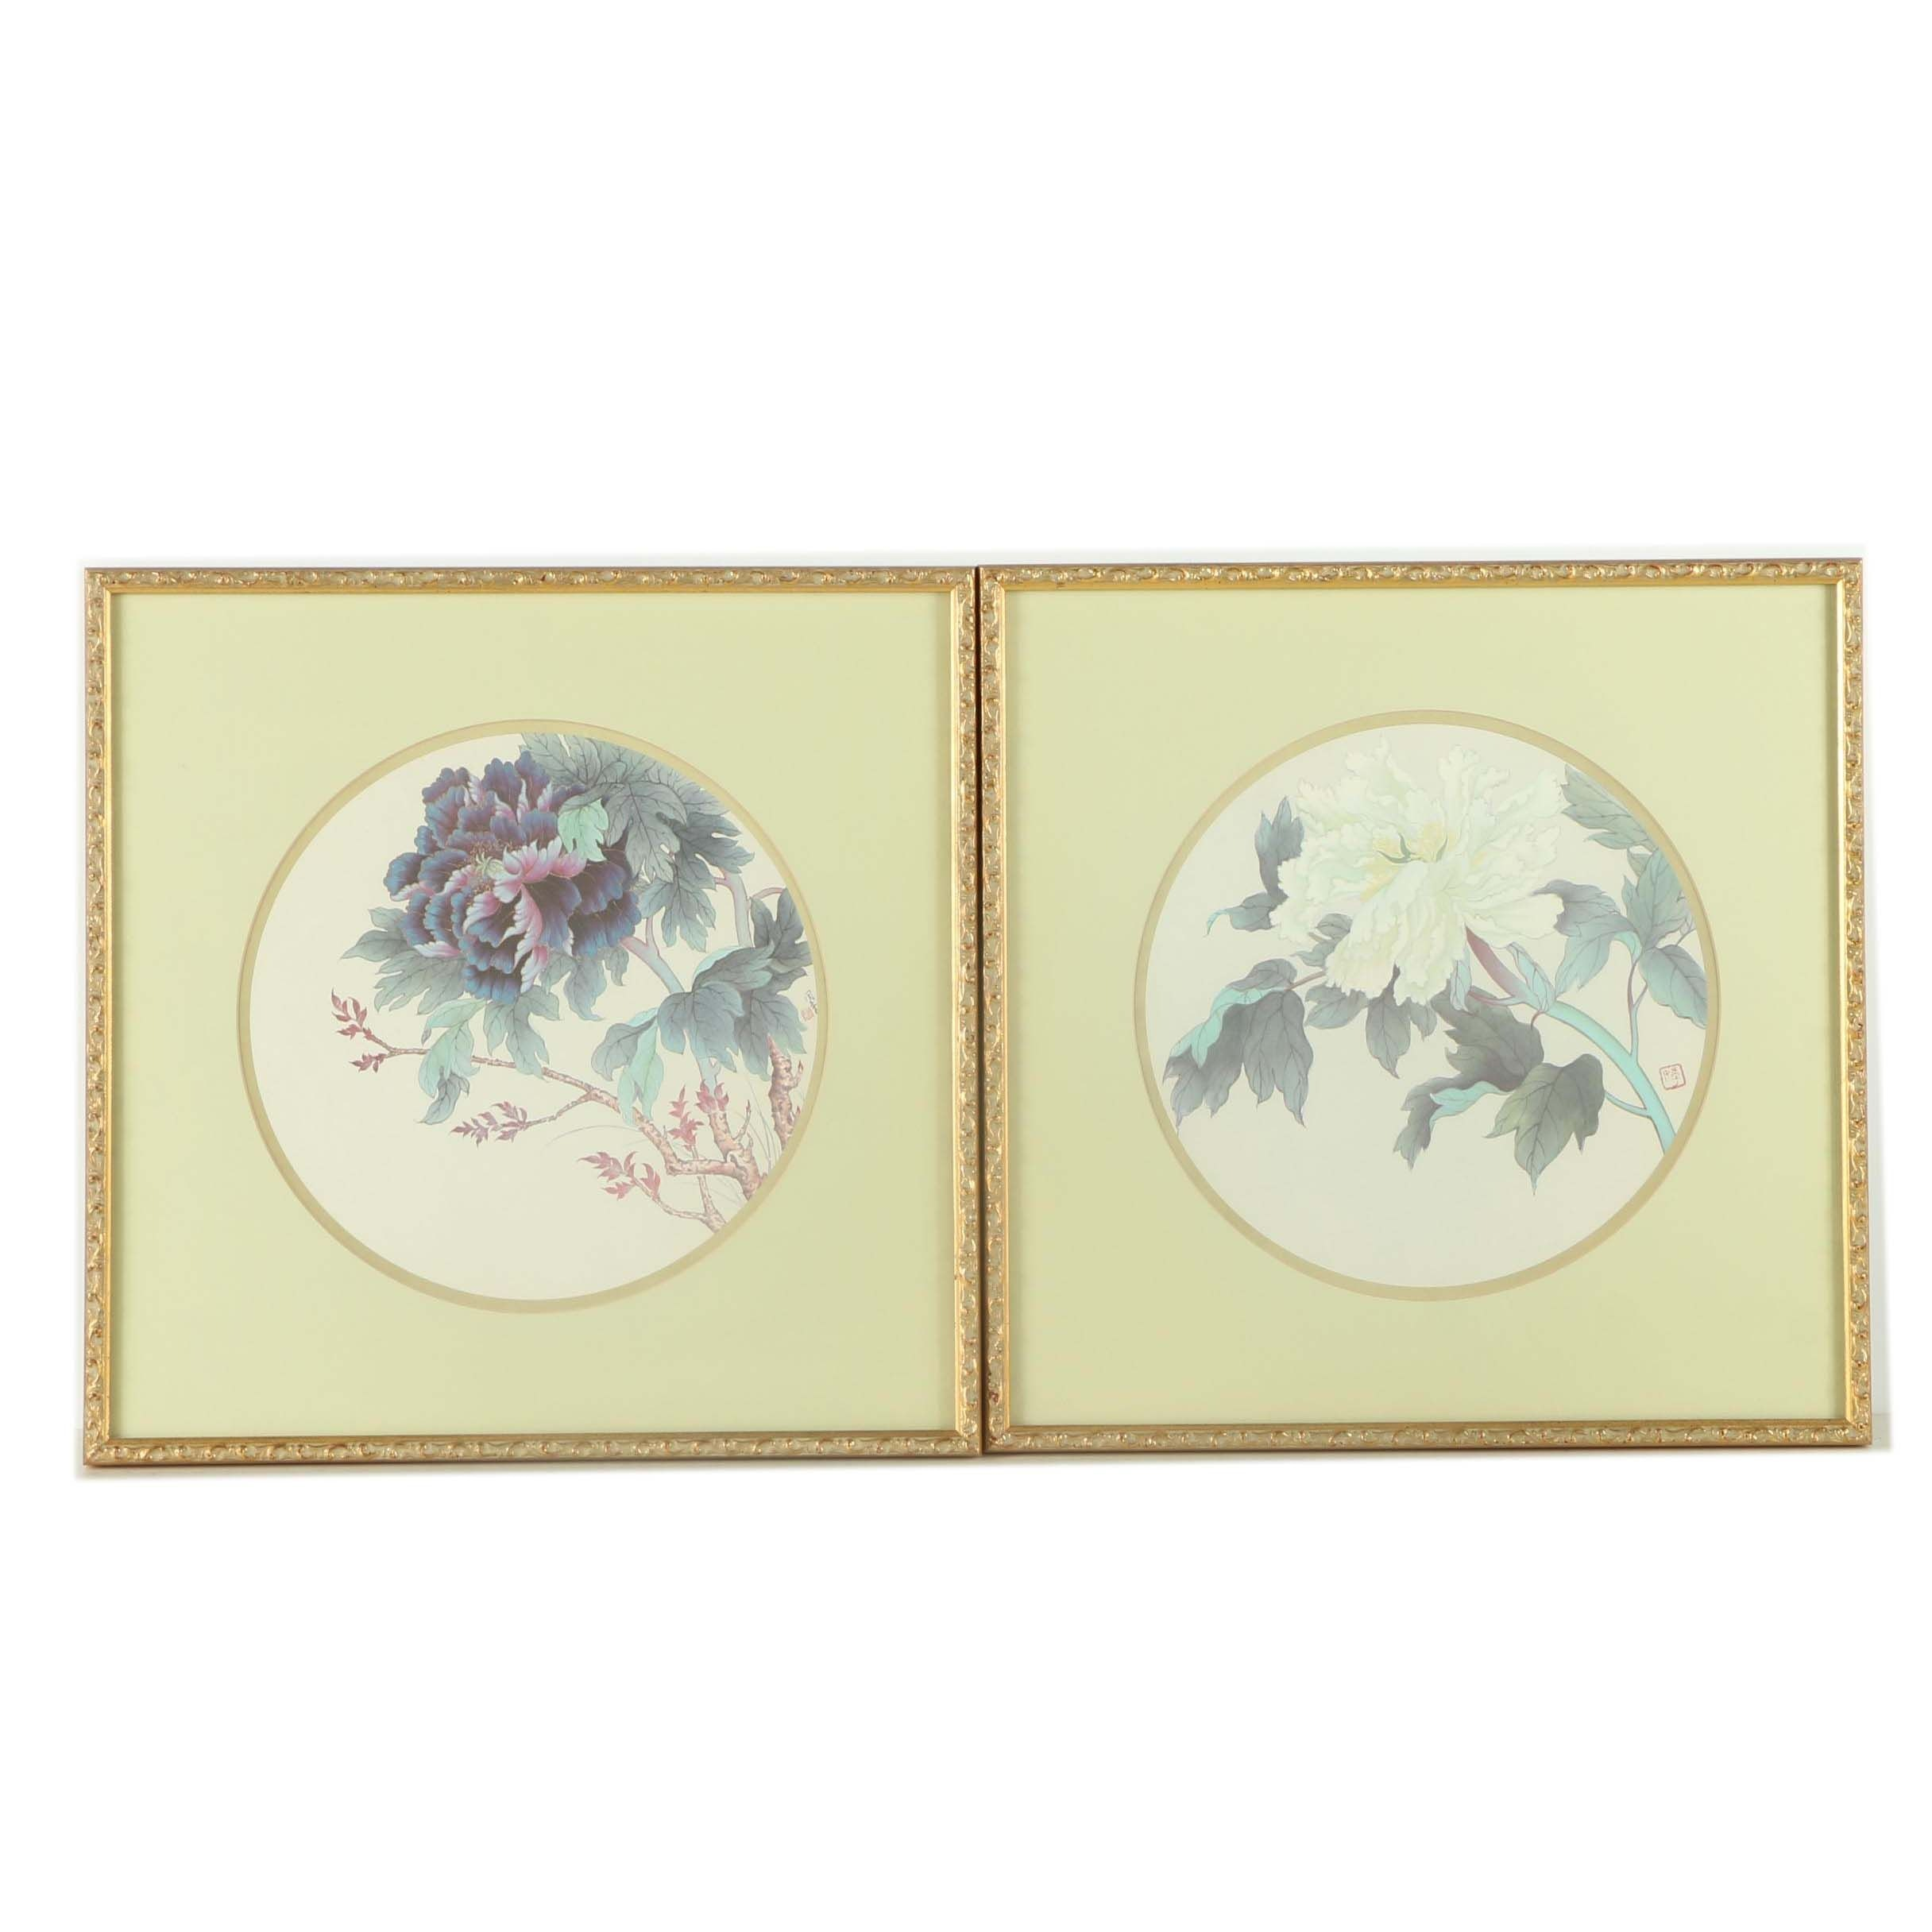 Offset Lithograph Prints After East Asian Floral Paintings